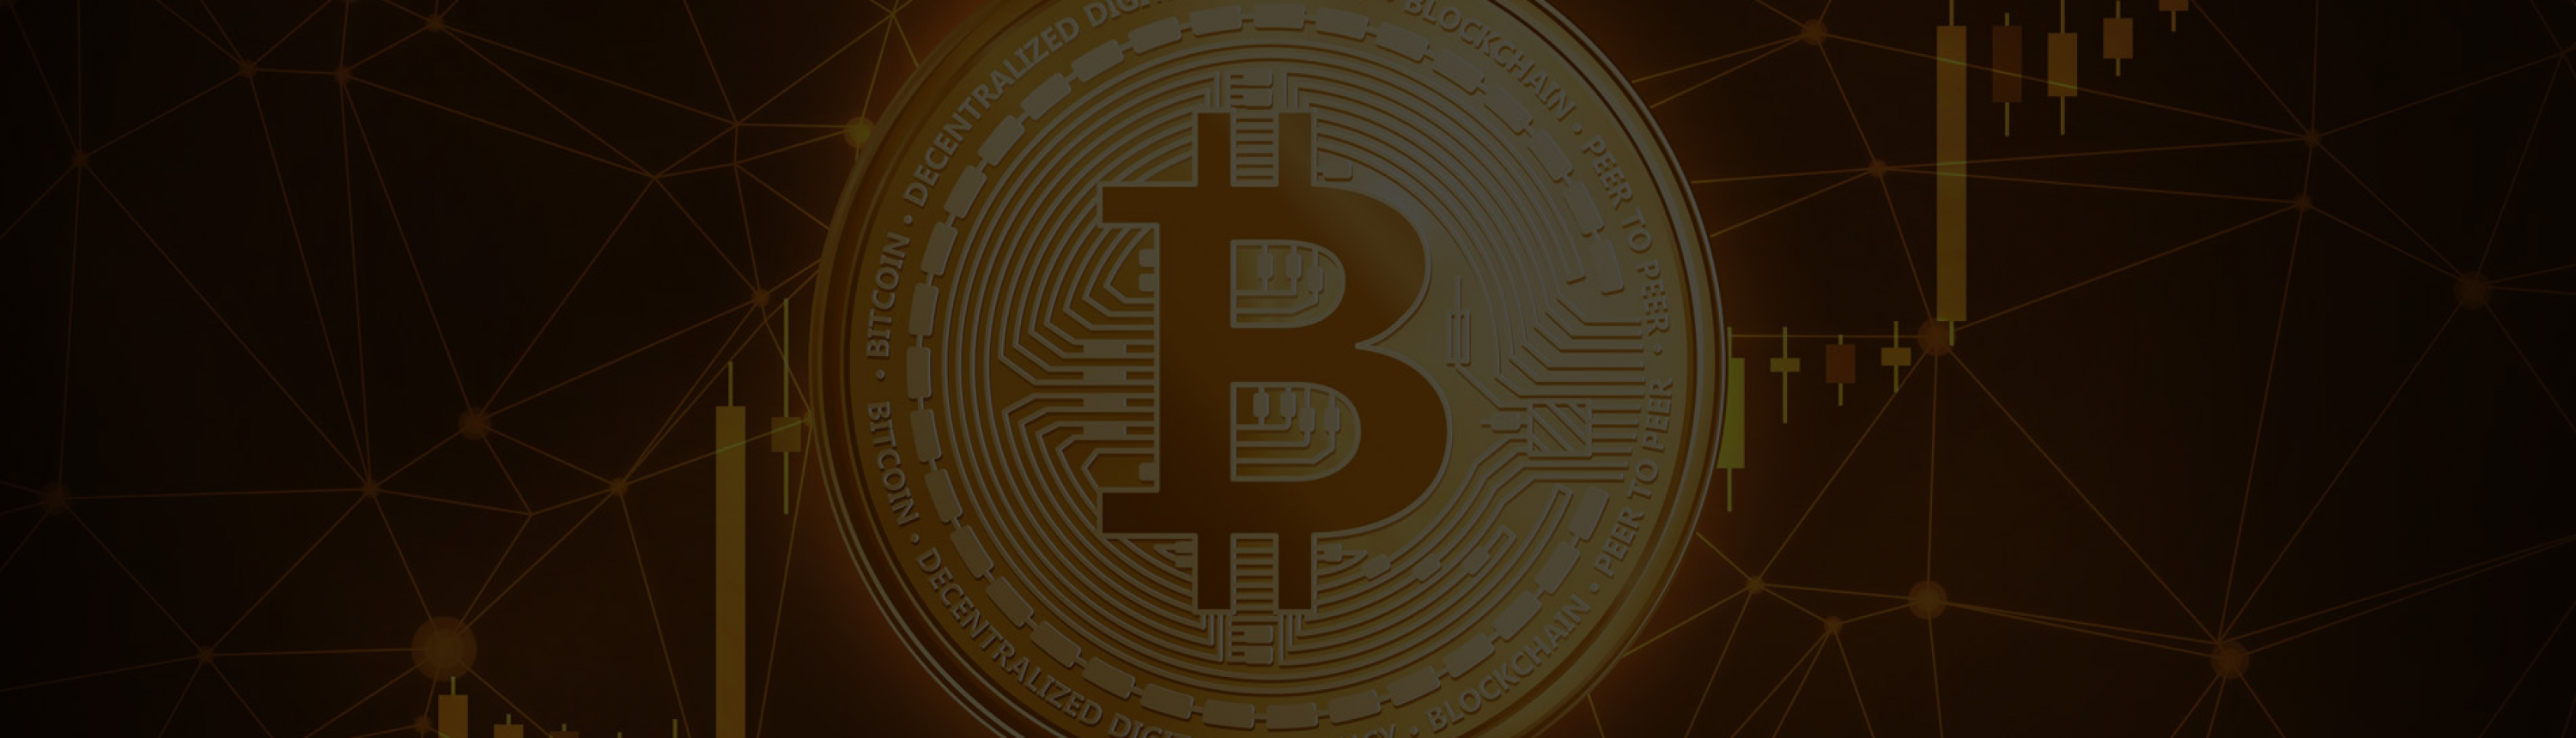 bitcoin_cryptocurency_slide_4